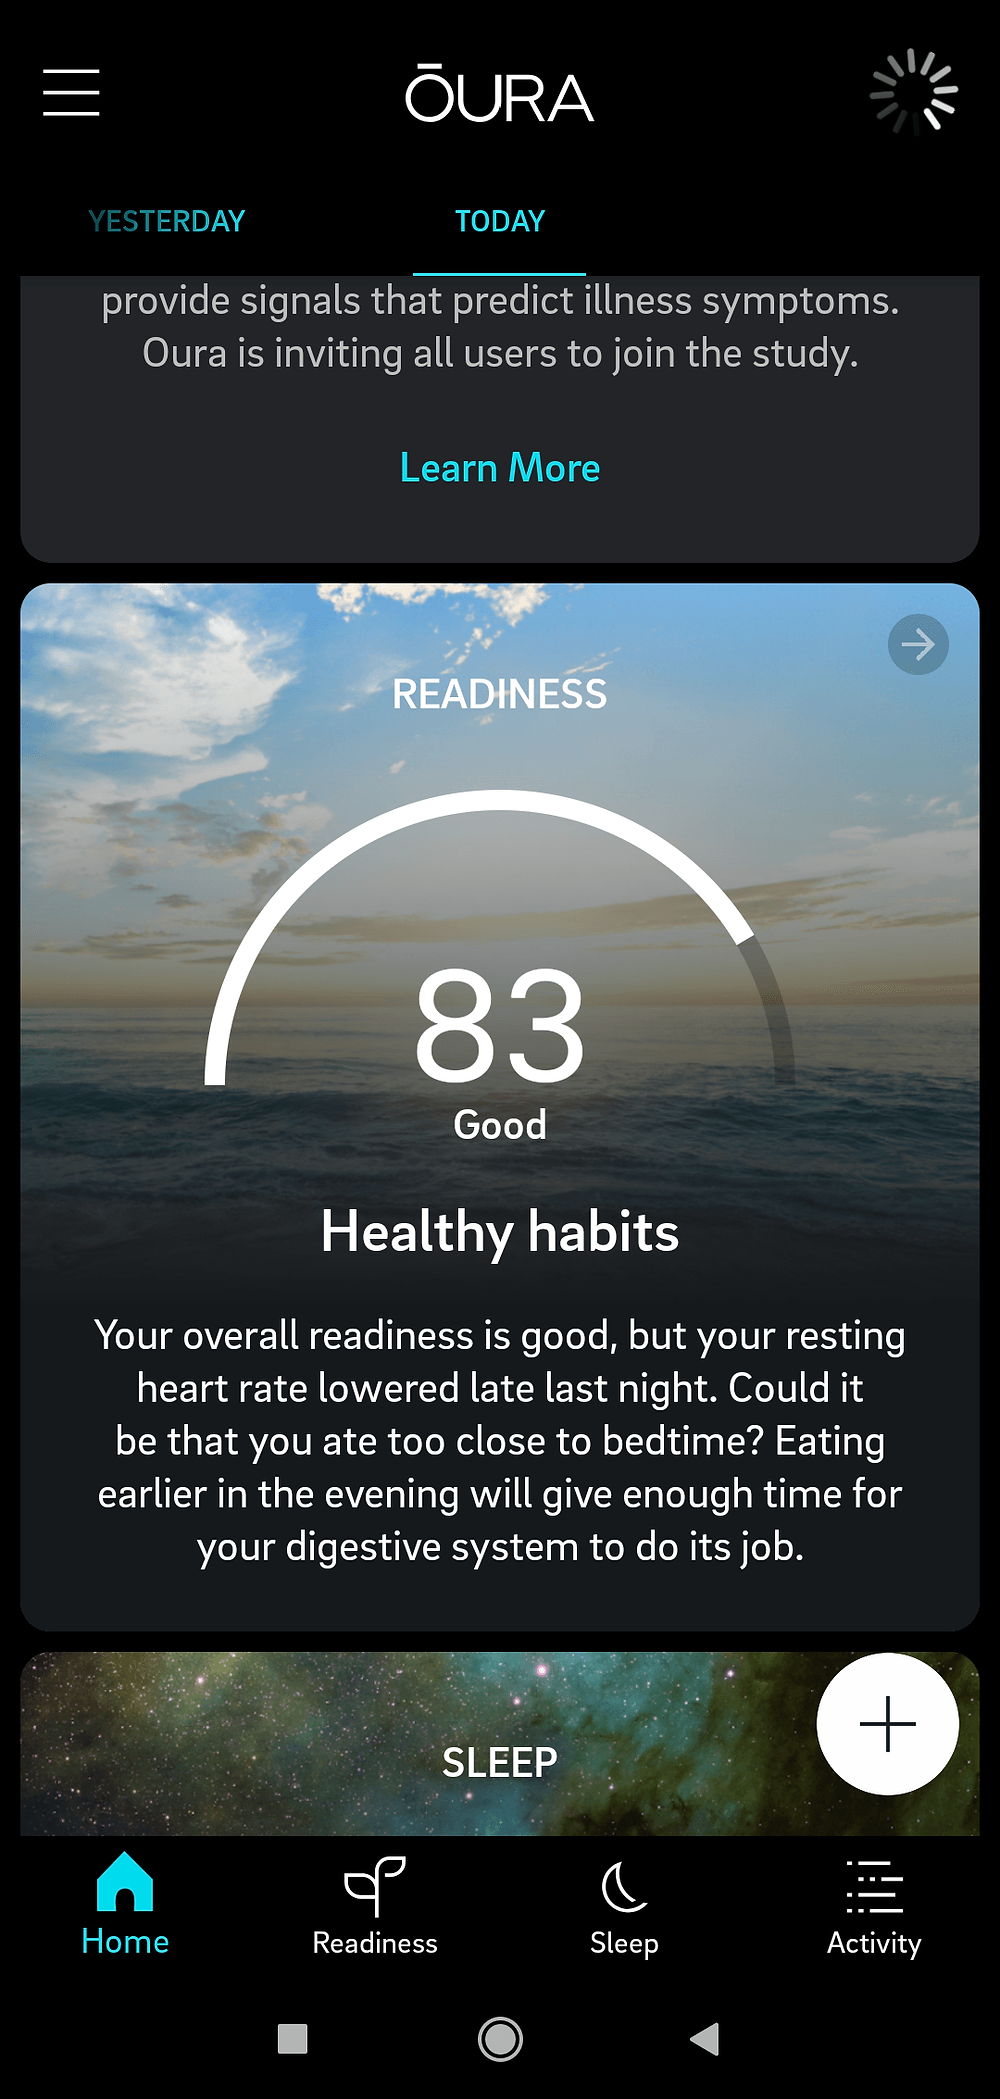 Oura Ring Readiness Summary in Mobile App